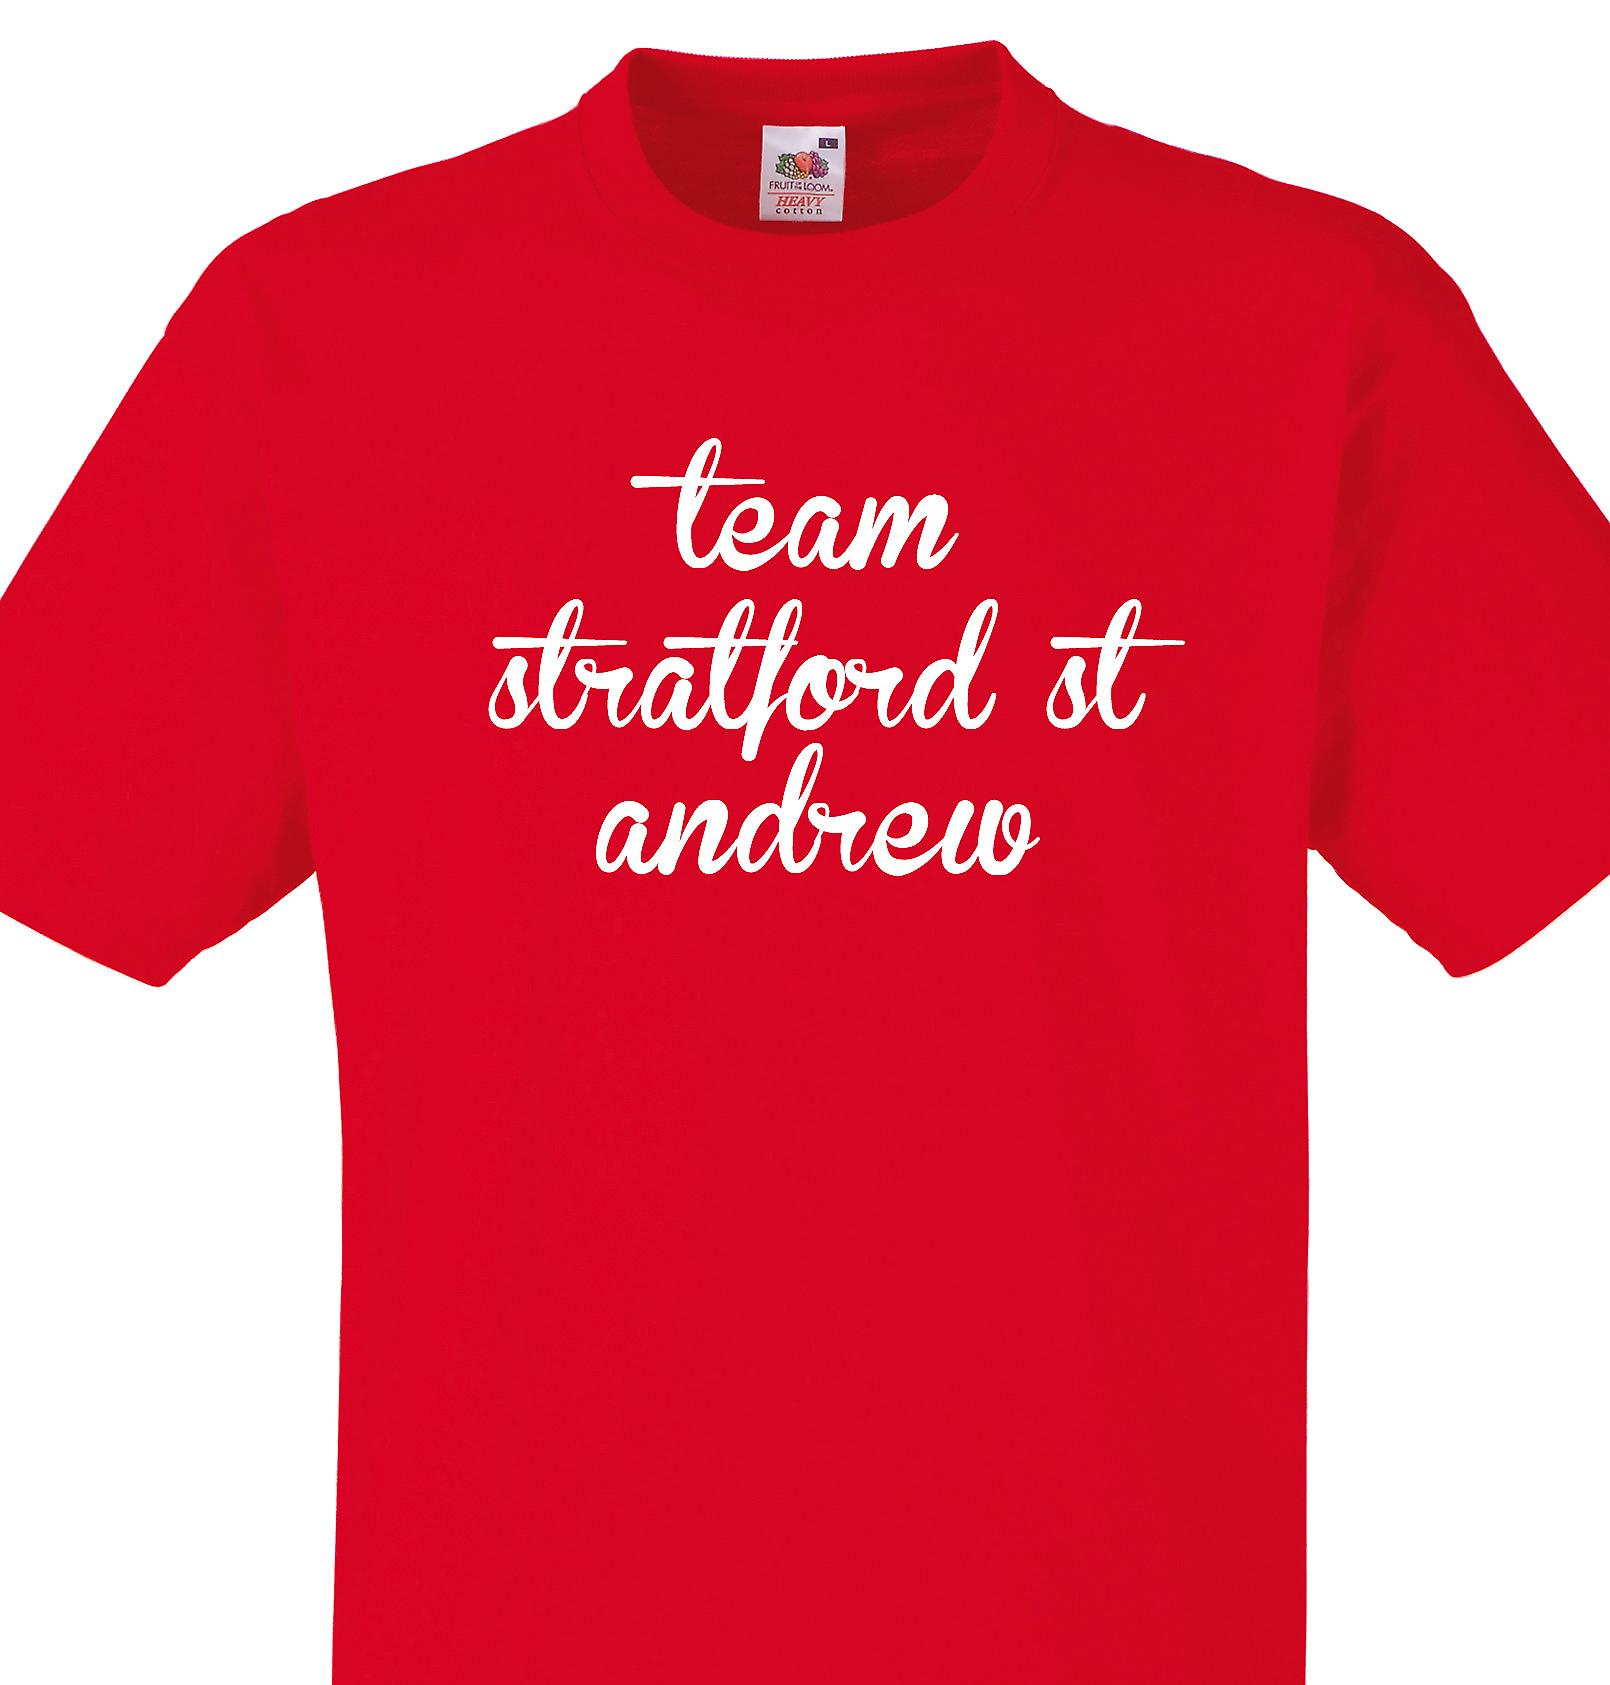 Team Stratford st andrew Red T shirt